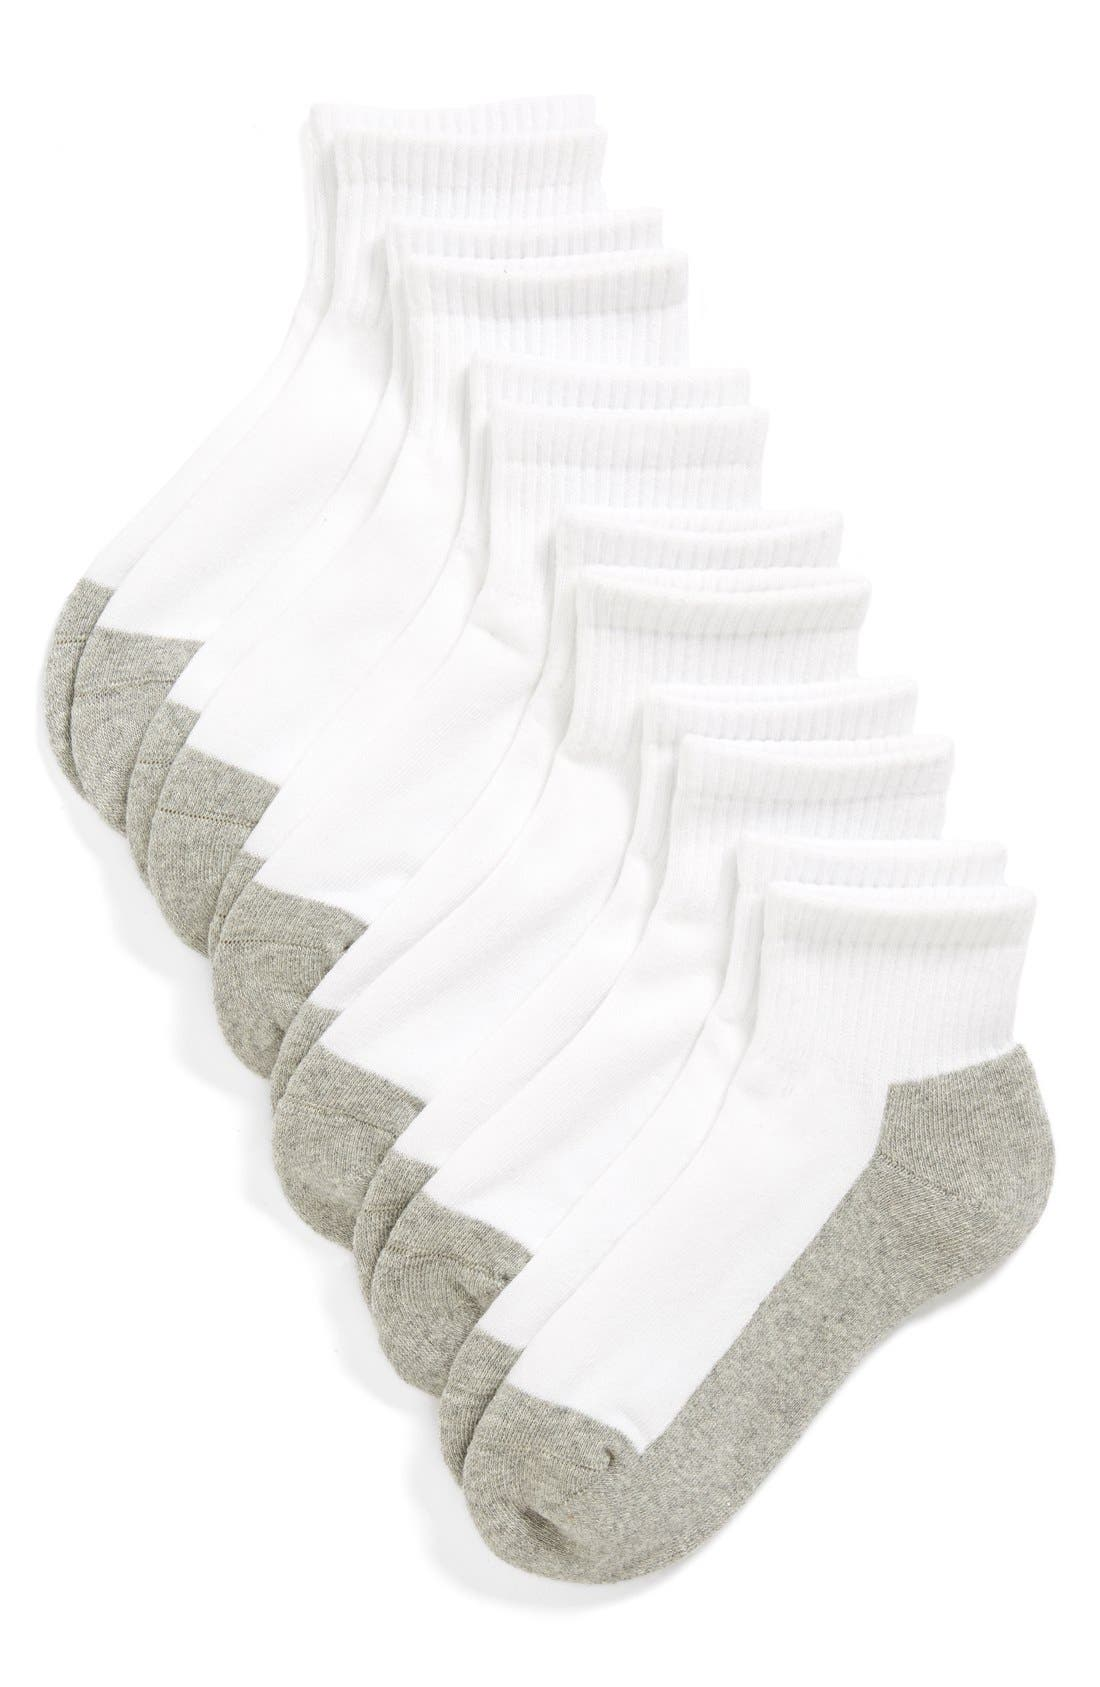 Nordstrom 6-Pack Active Quarter Socks (Toddler, Little Kid & Big Kid)